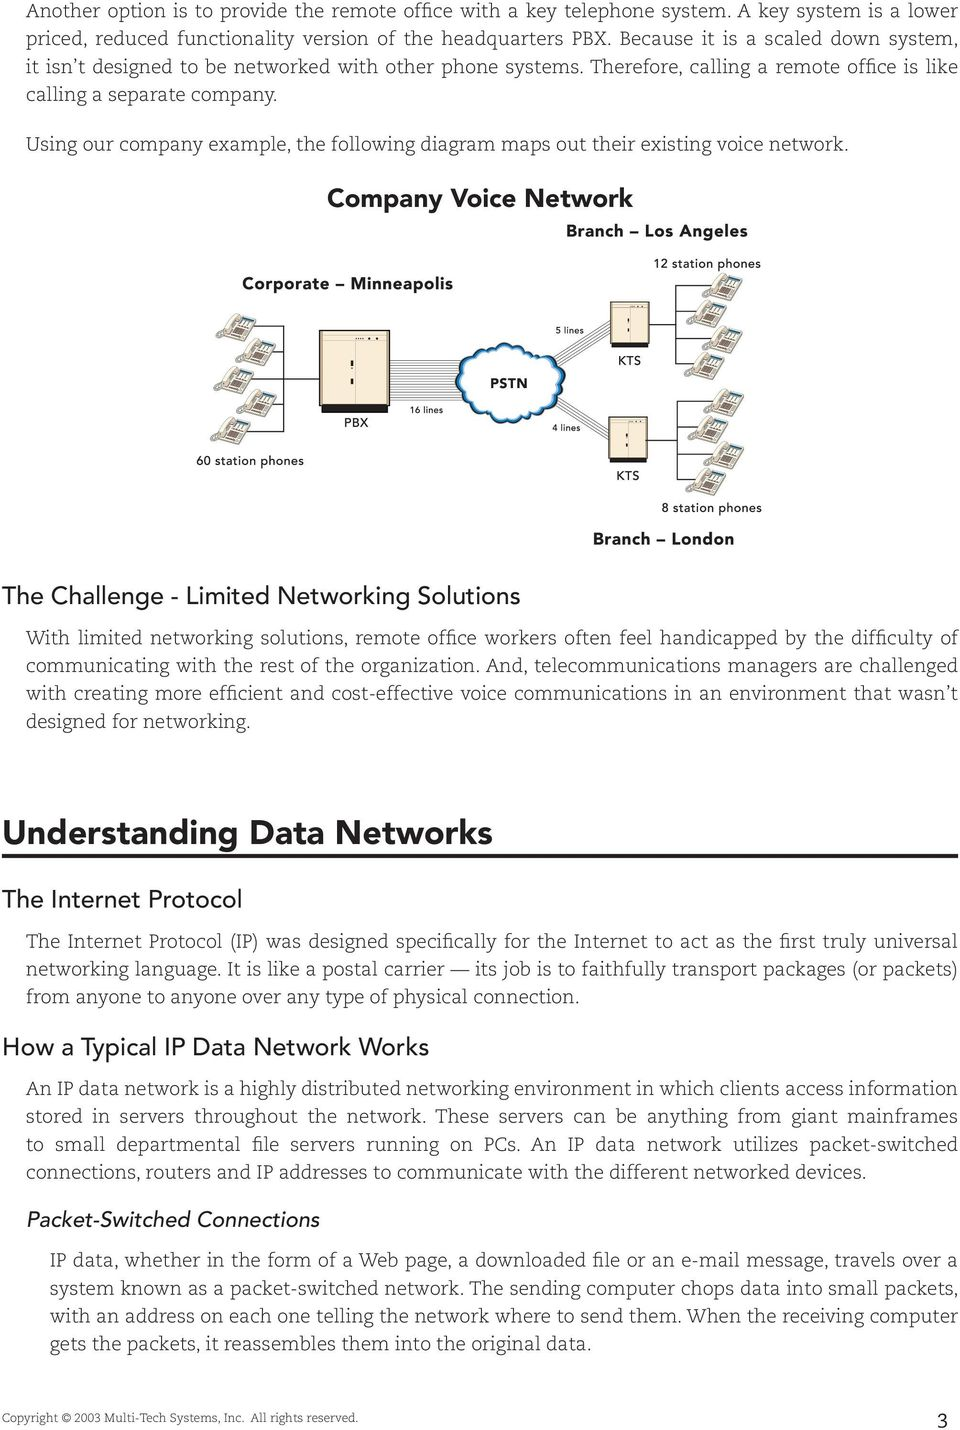 Using our company example, the following diagram maps out their existing voice network.